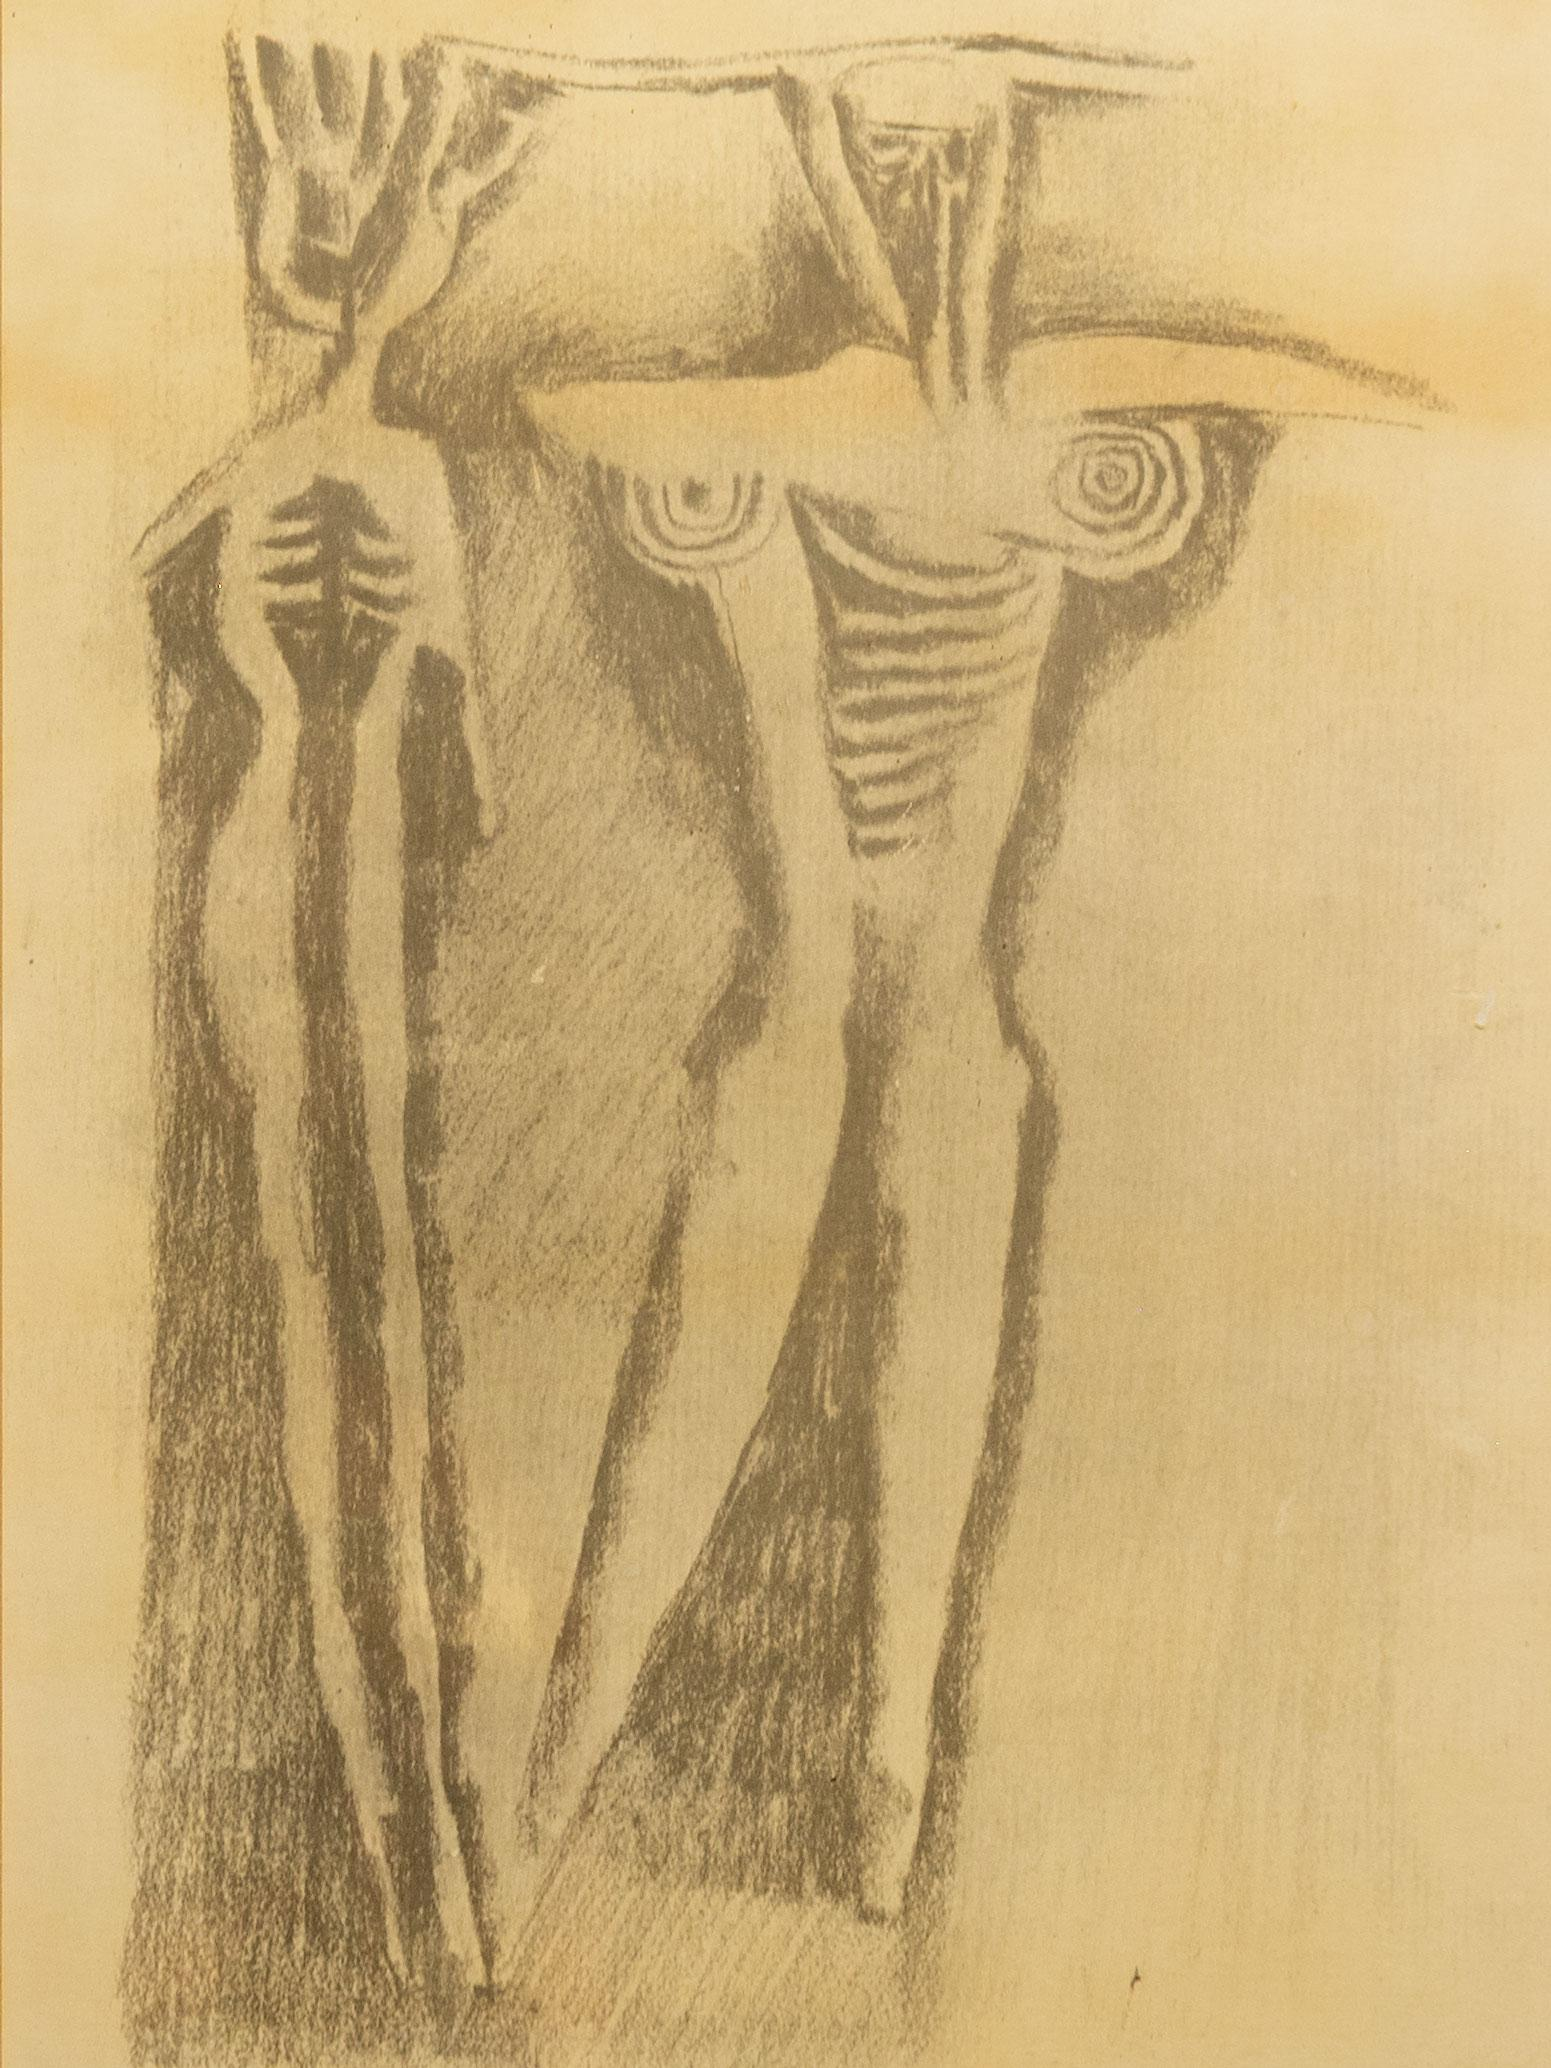 Cecil Skotnes (SA 1926 - 2009) Lithograph, Abstract Figures, Signed & Numbered 74/100 in Pencil, 40 x 26